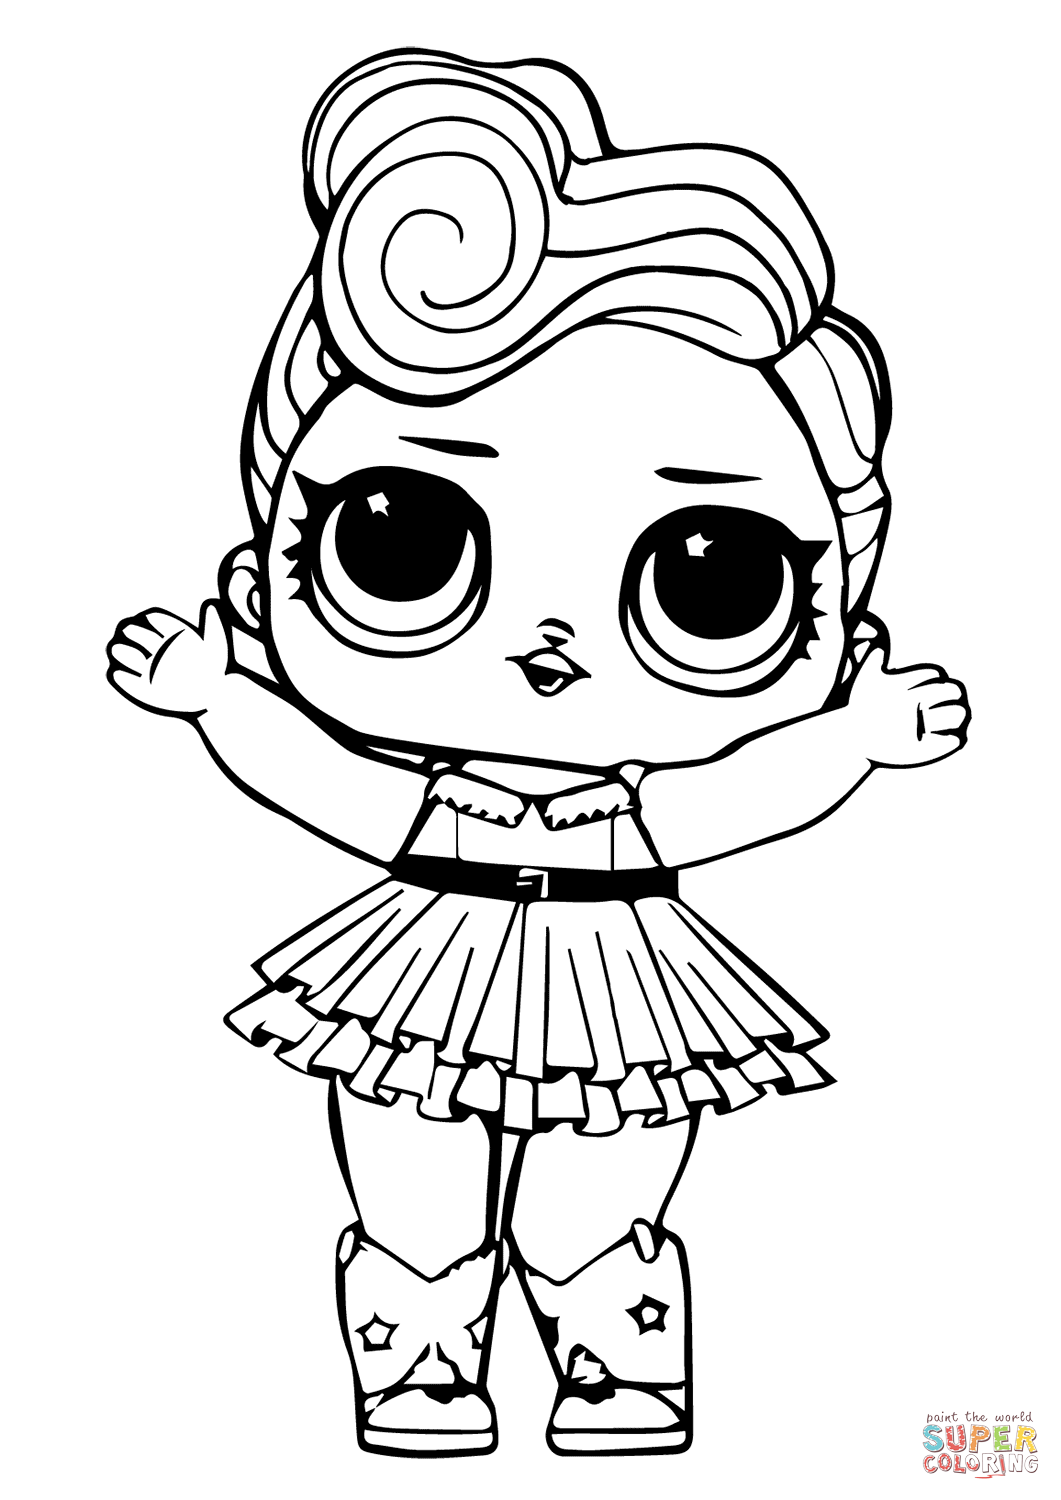 dolls coloring pages shoppie dolls coloring pages at getcoloringscom free pages coloring dolls